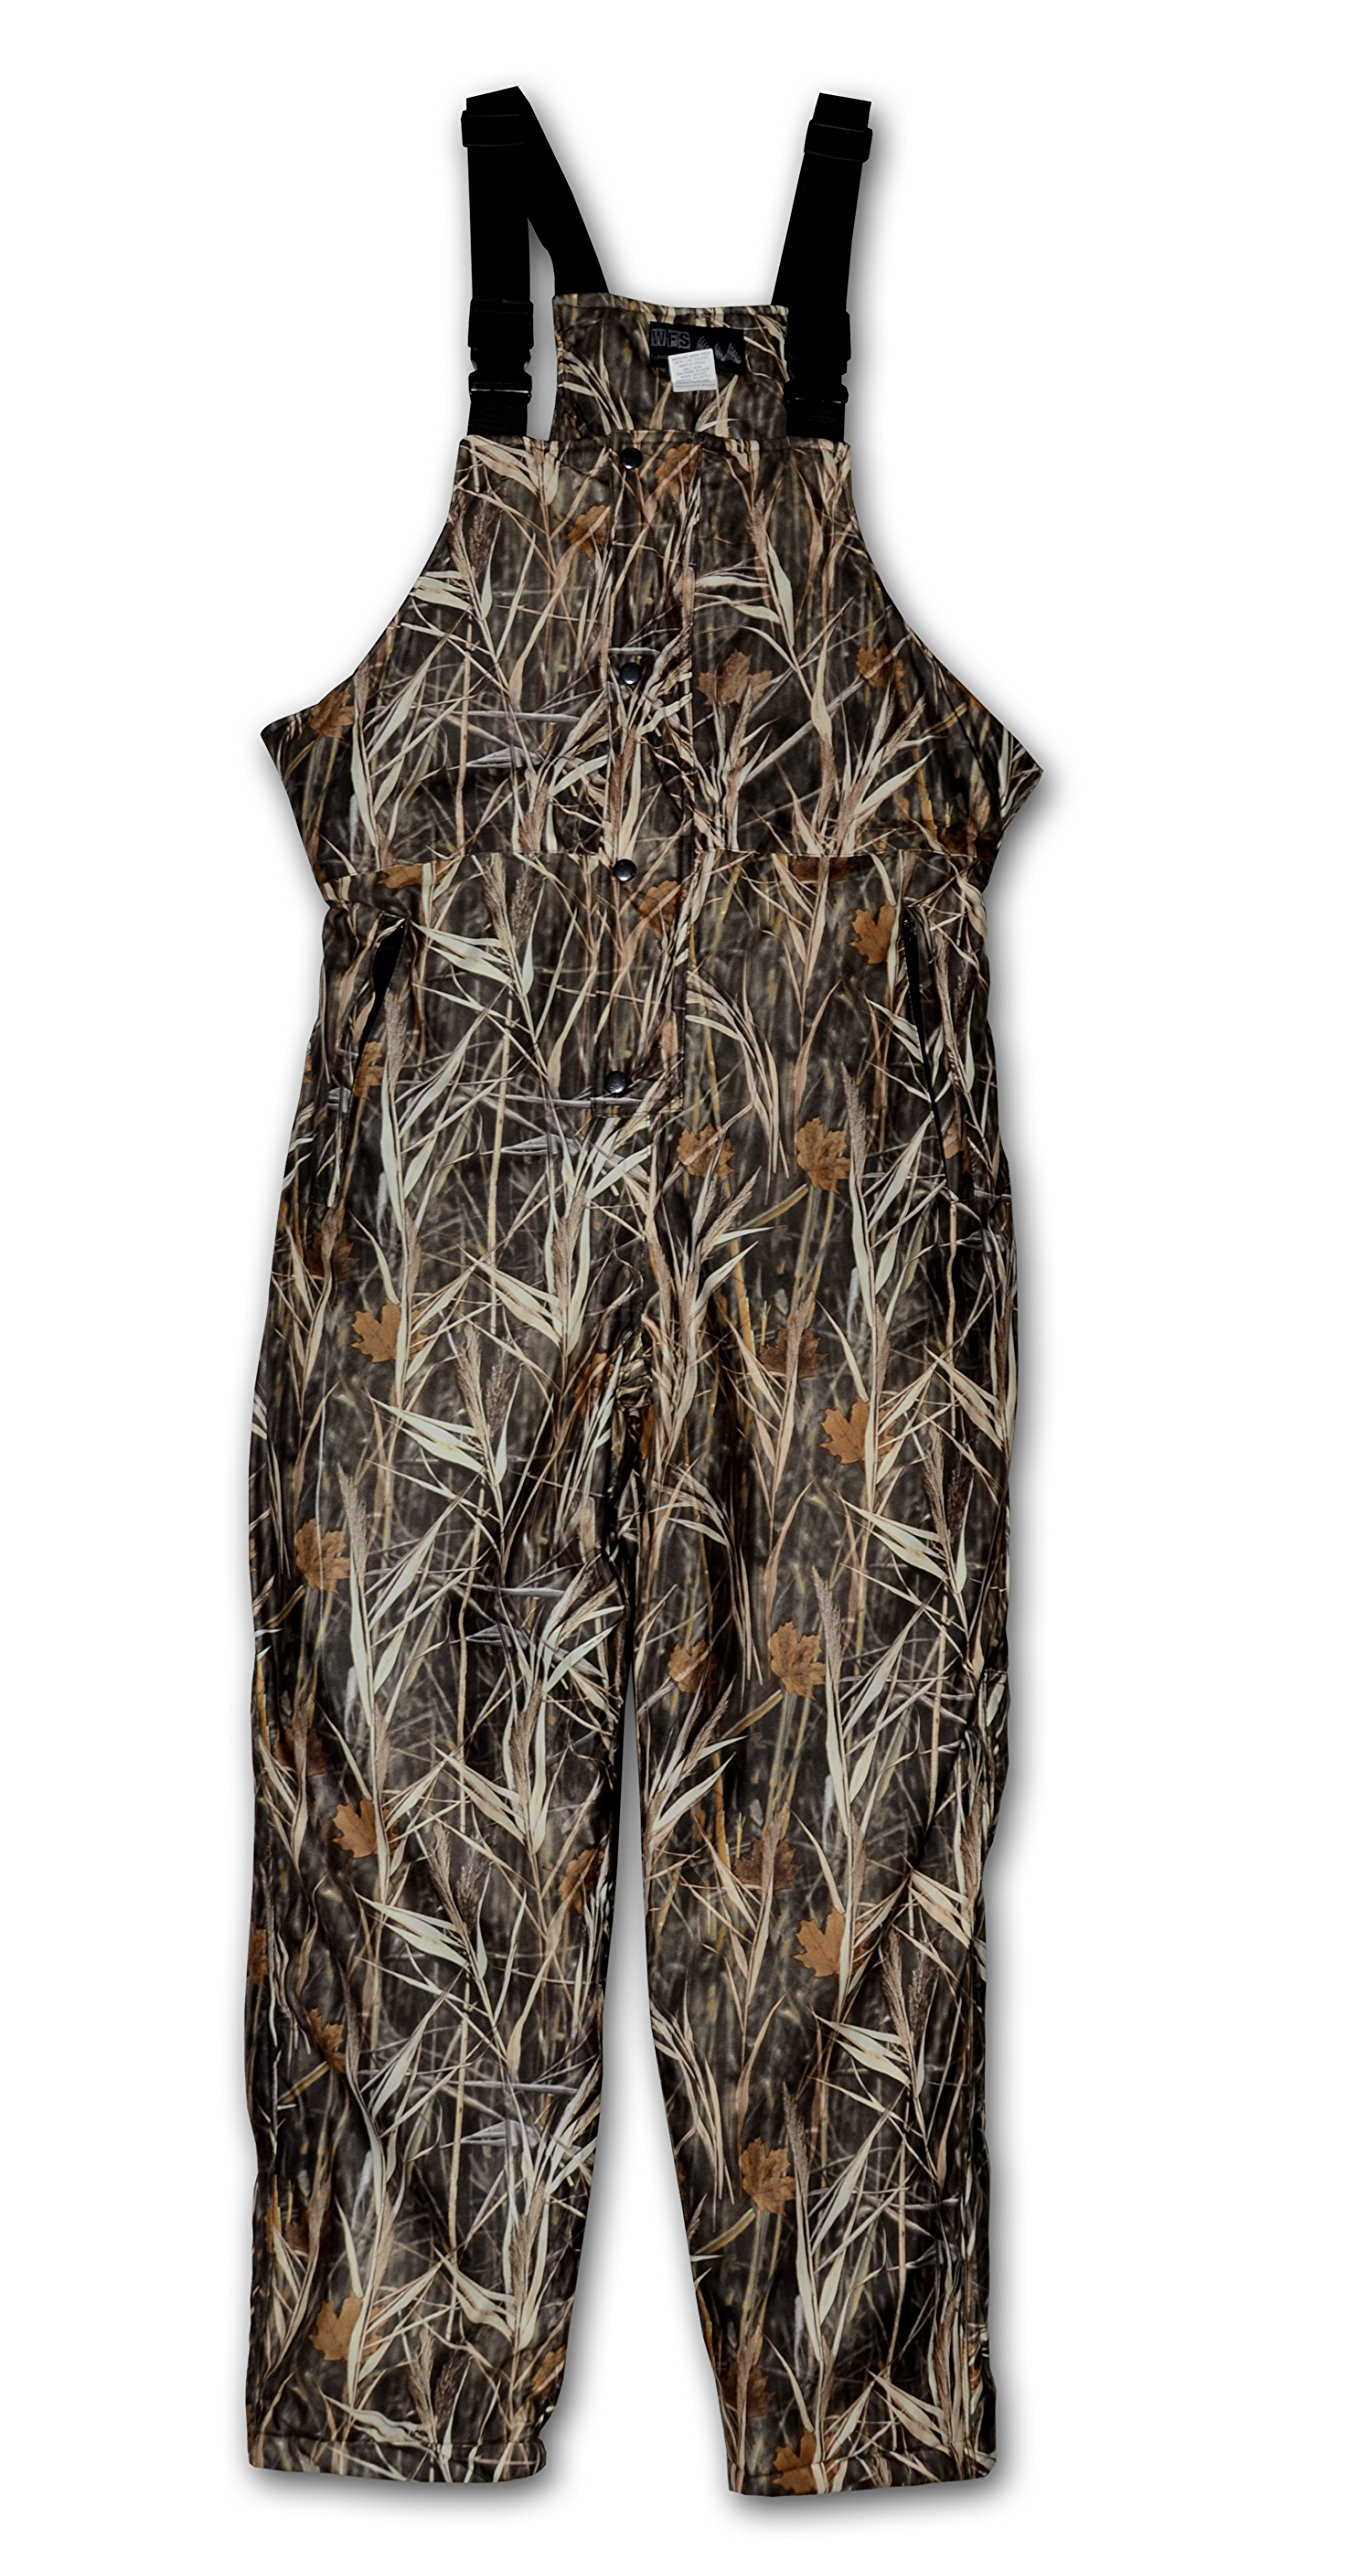 Burly Waterfowl Camo Waterproof Breathable Insulated Bib Overall by WORLD FAMOUS